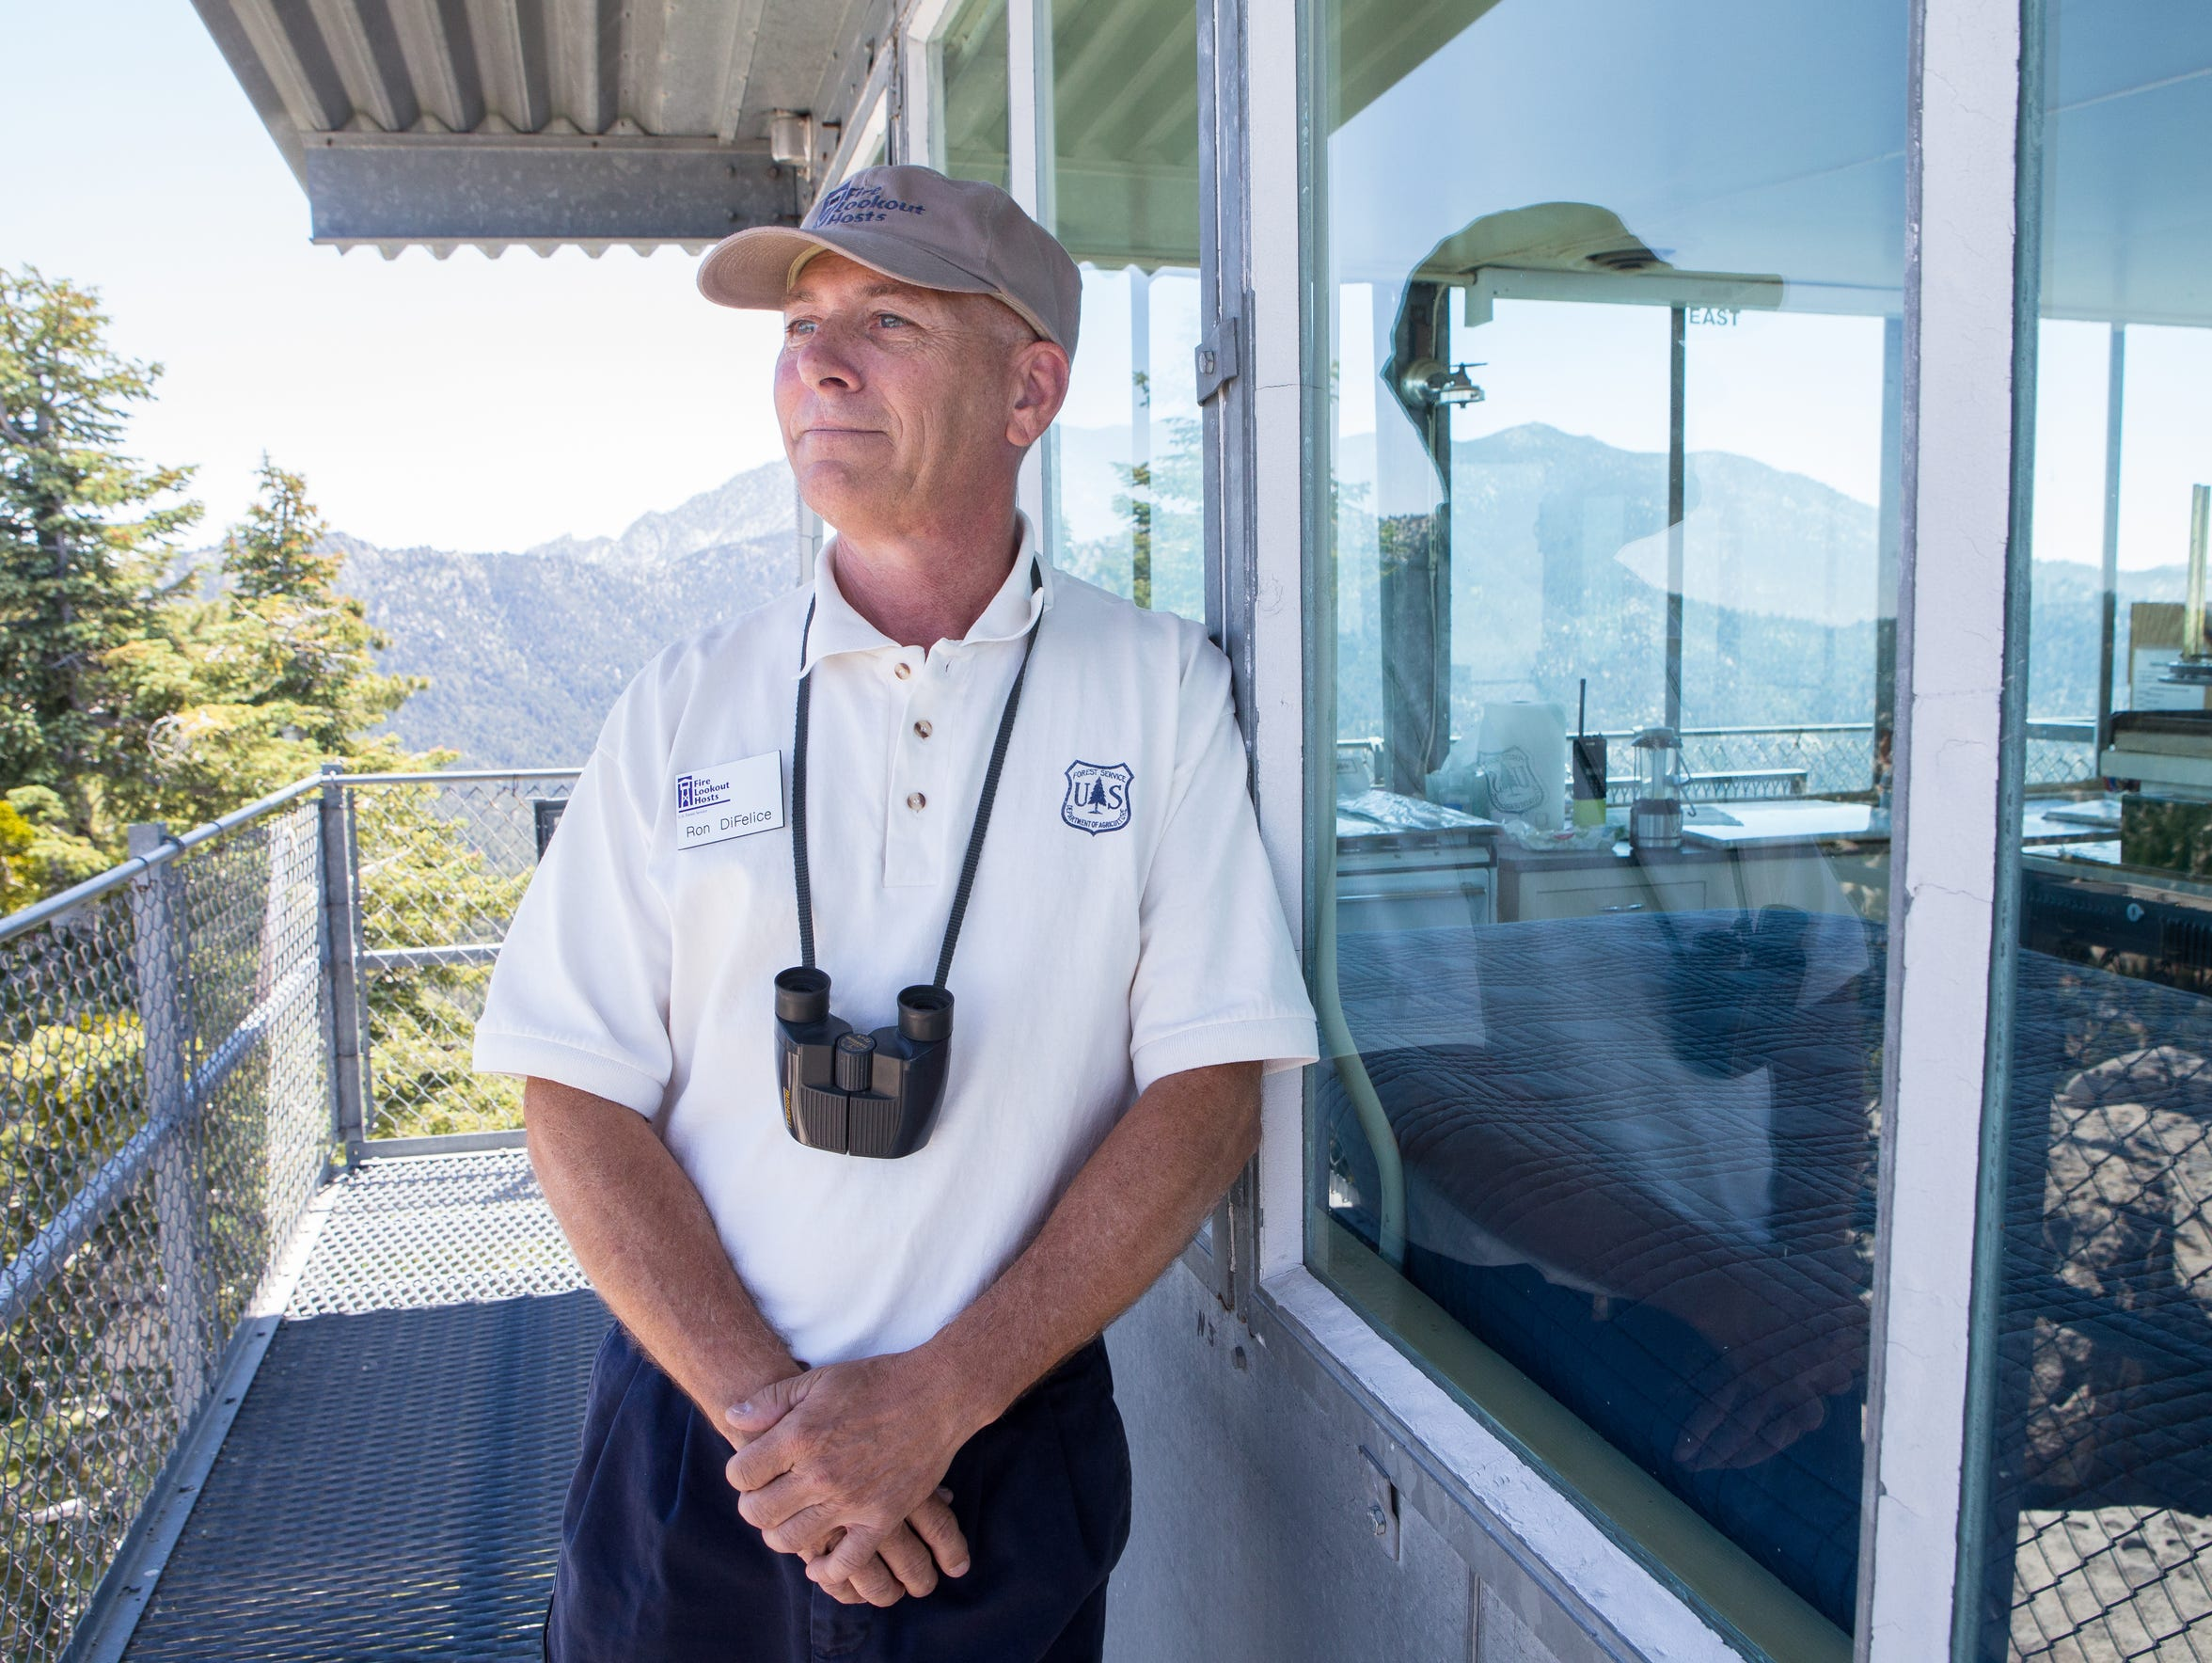 Ron DiFelice has worked at Black Mountain Fire Lookout